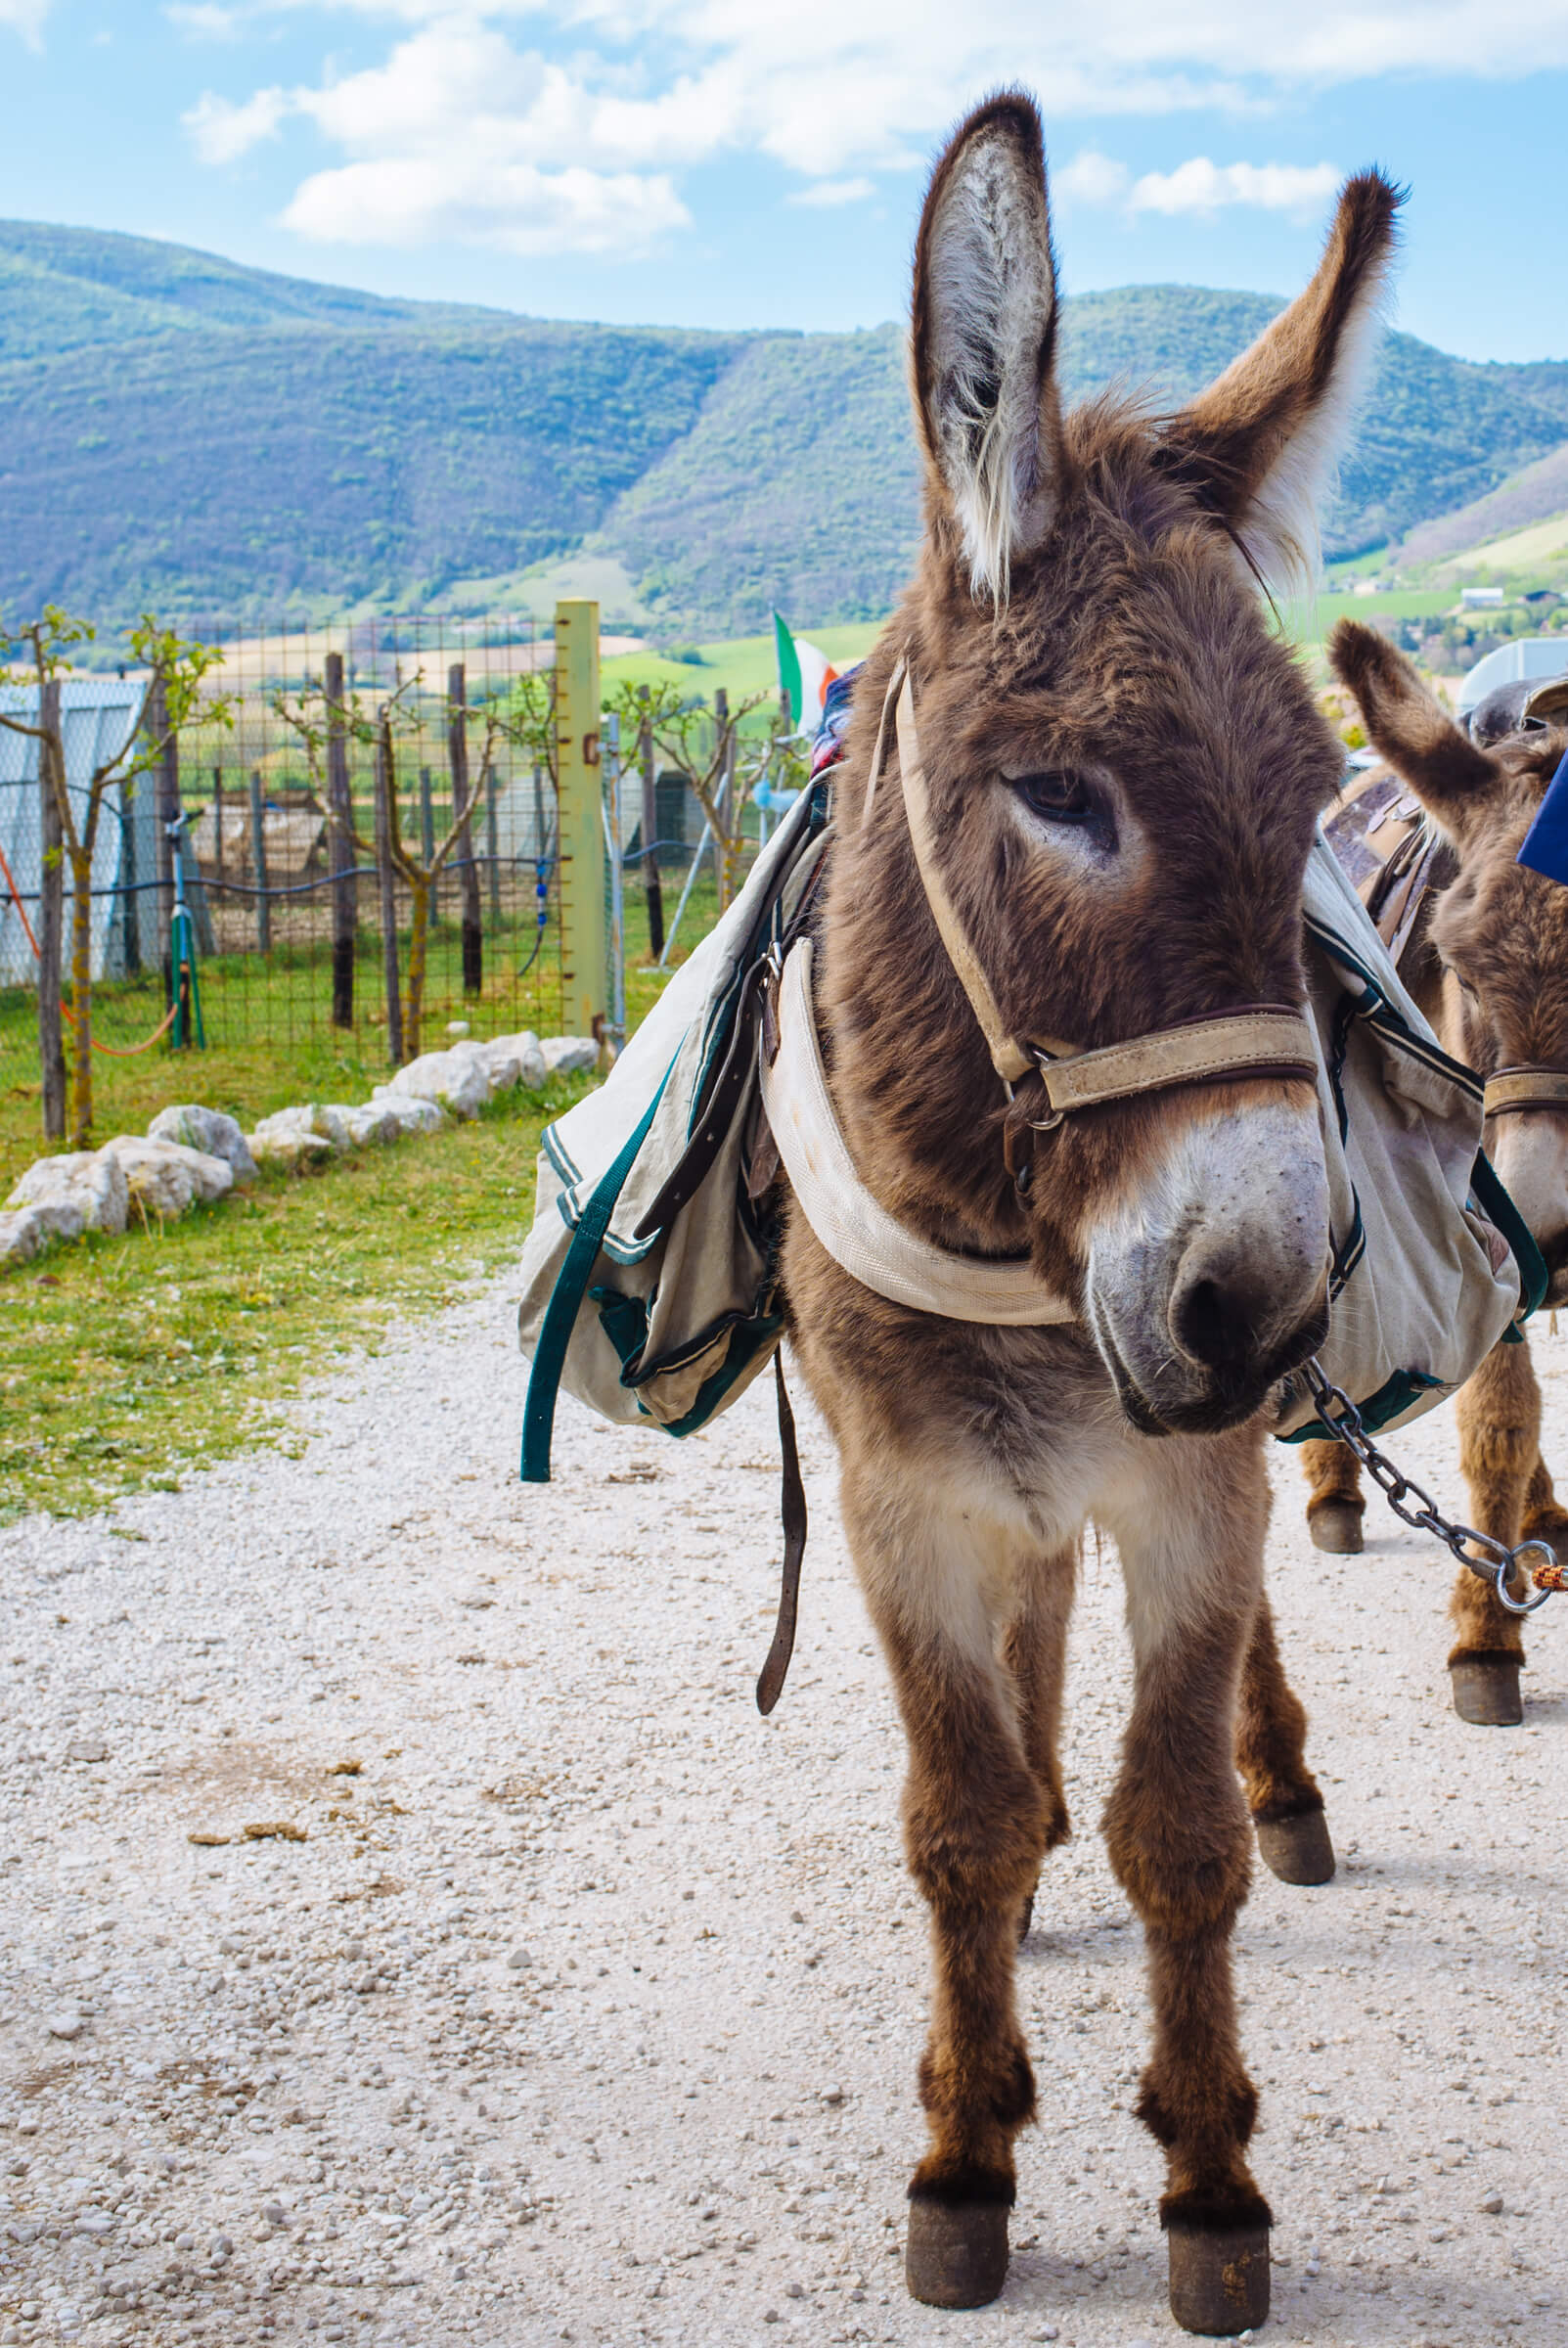 Riding Donkeys in Norcia Umbria Italy countryside, The Taste SF